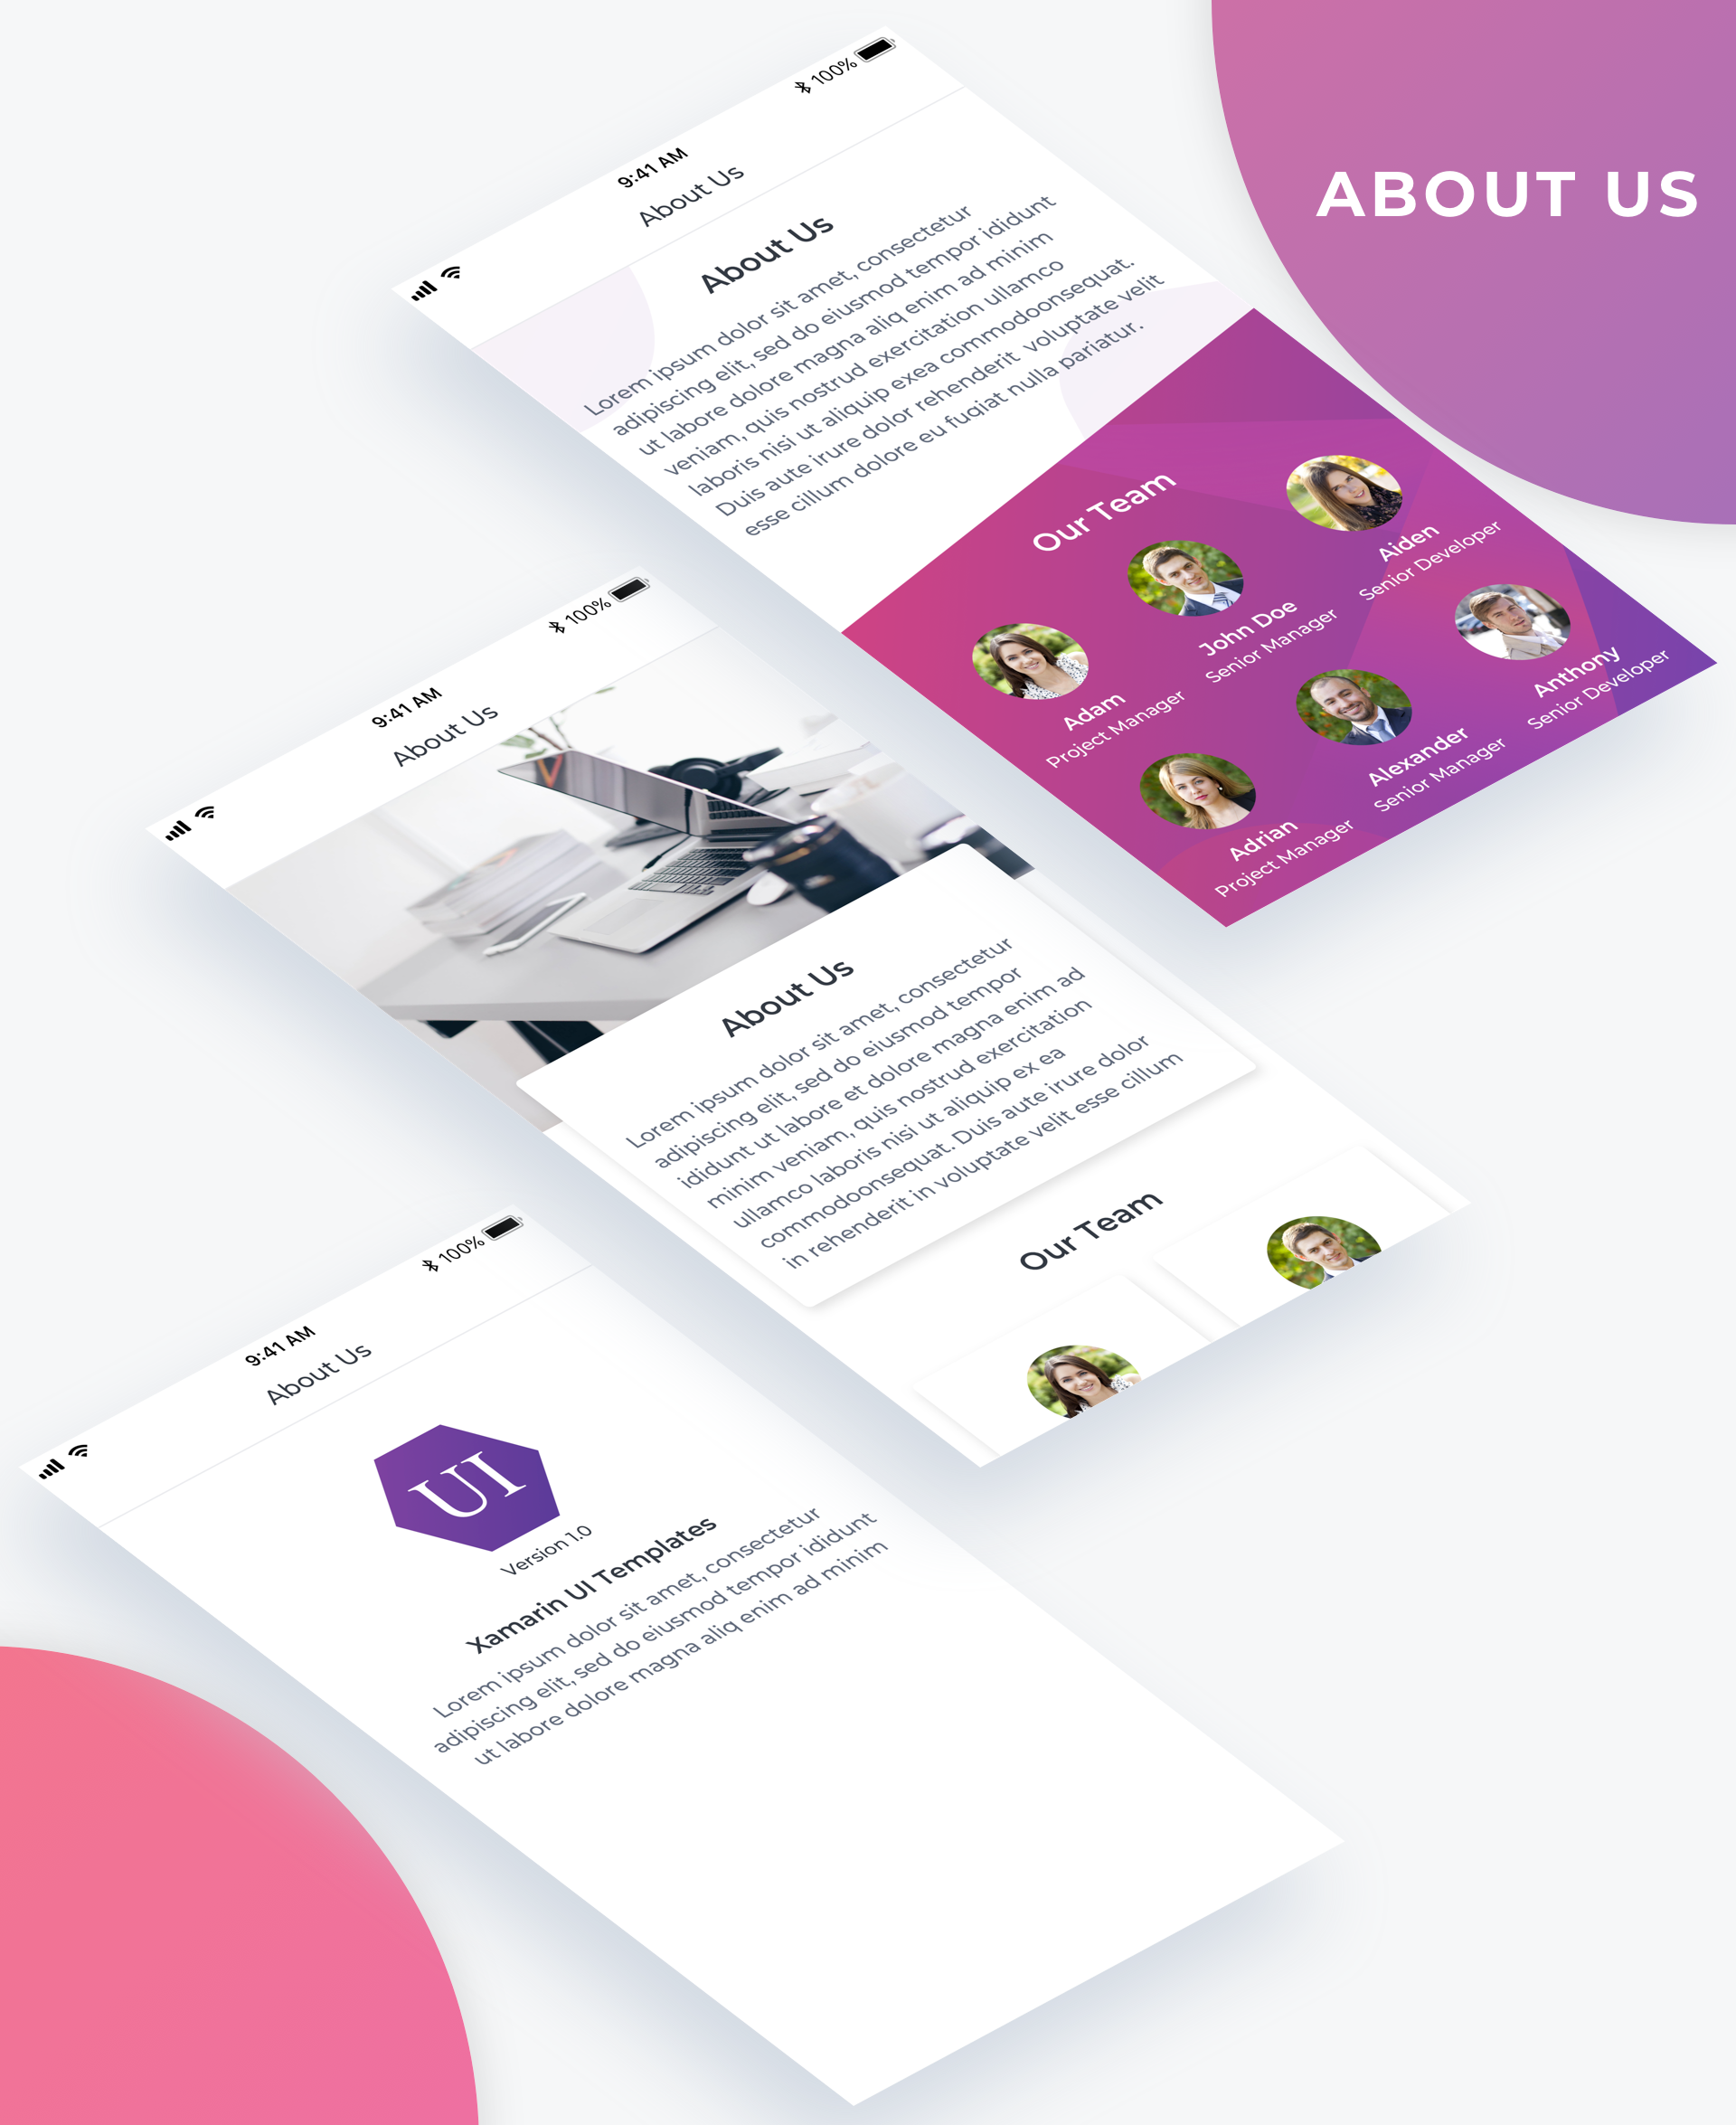 Essential UI Kit - About Page